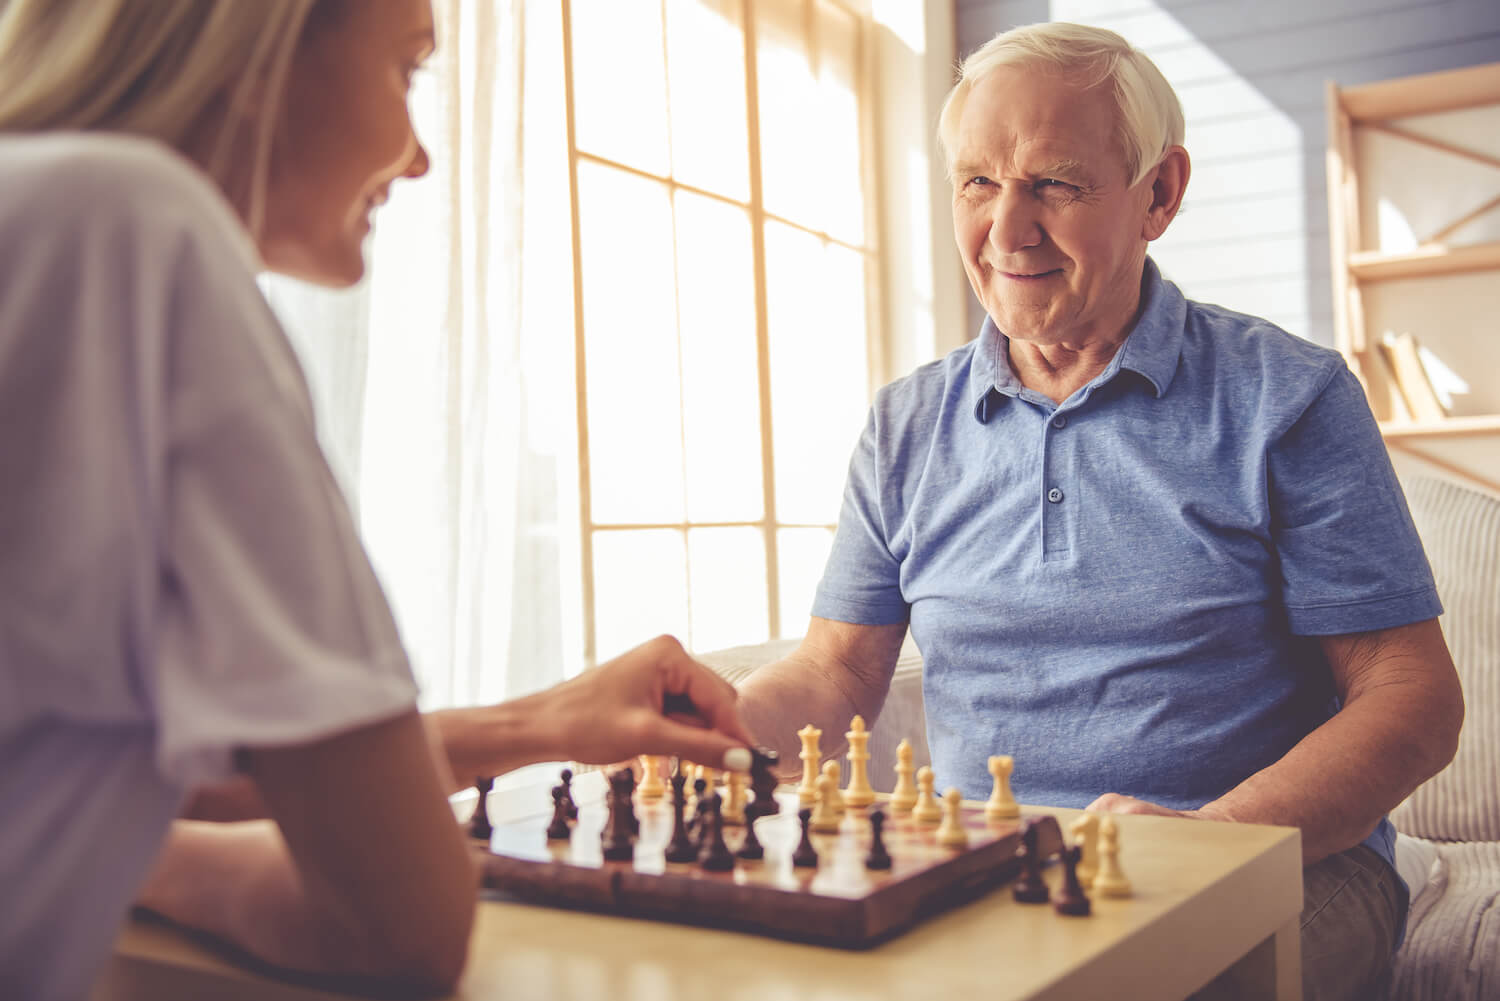 Providing Aging Parents to stay in their home and enjoy life and activities like playing chess.